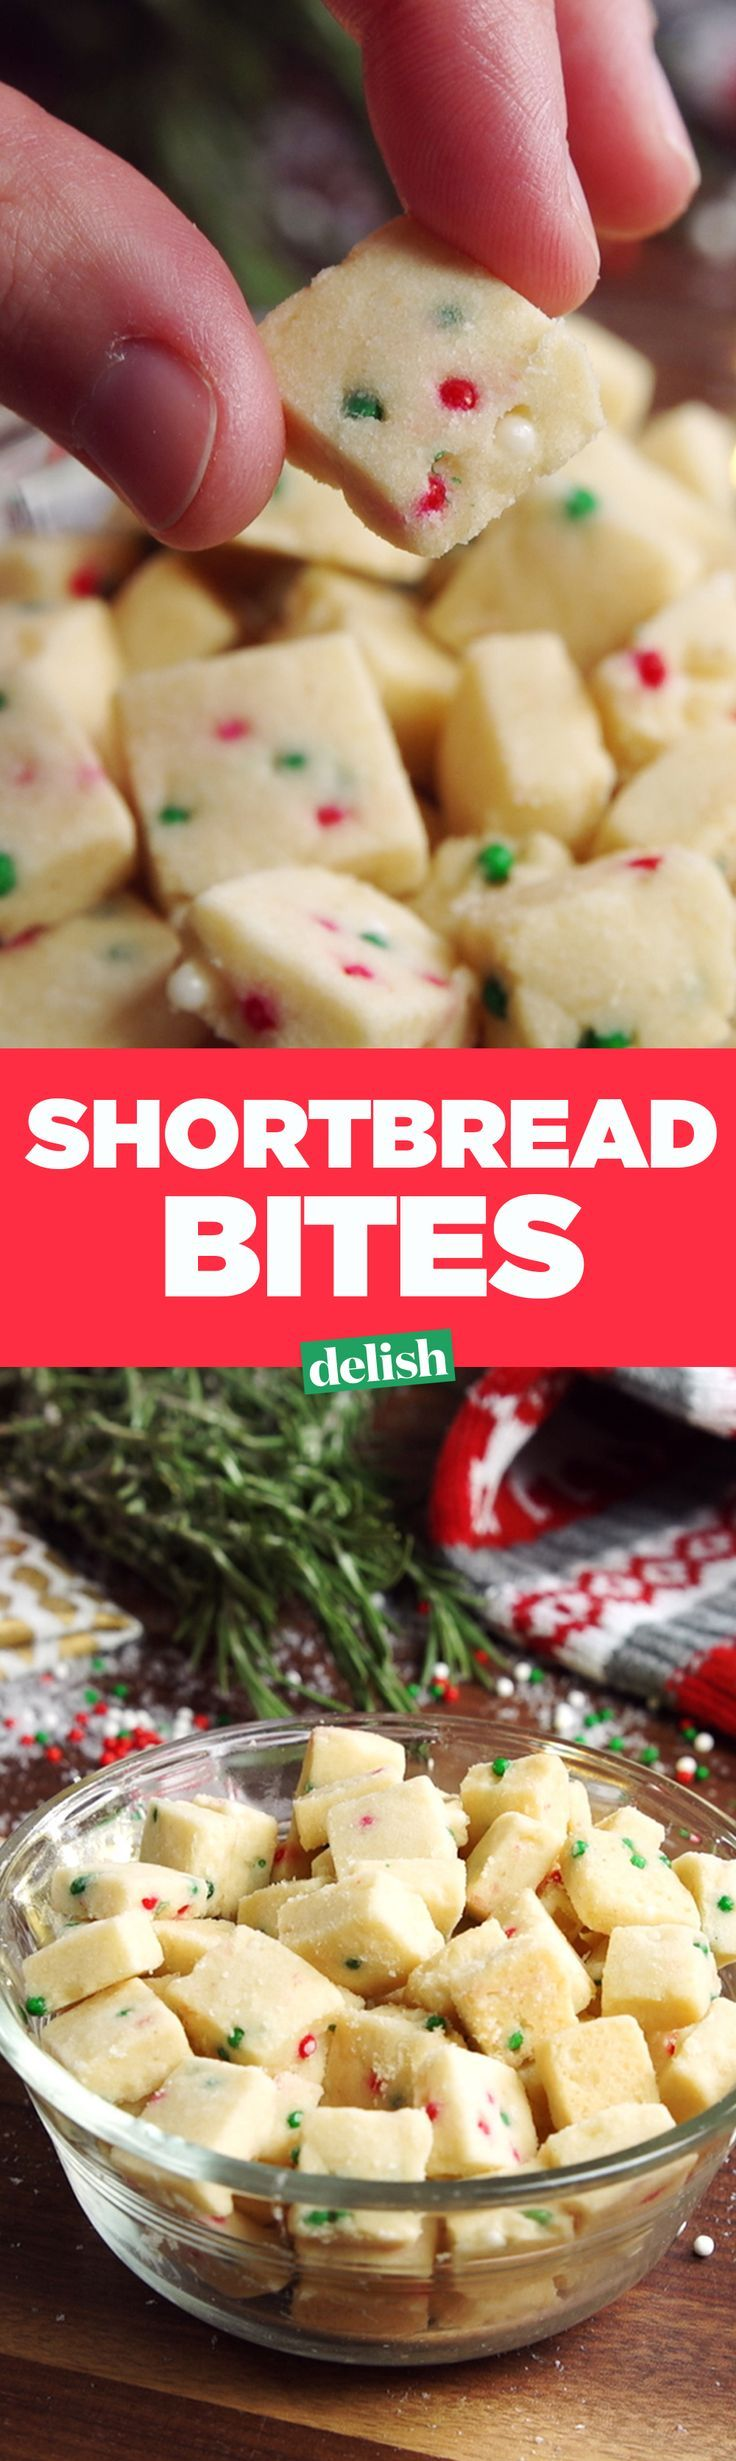 These Shortbread Bites need to be at every Christmas party you go to this year. Get the recipe on Delish.com.